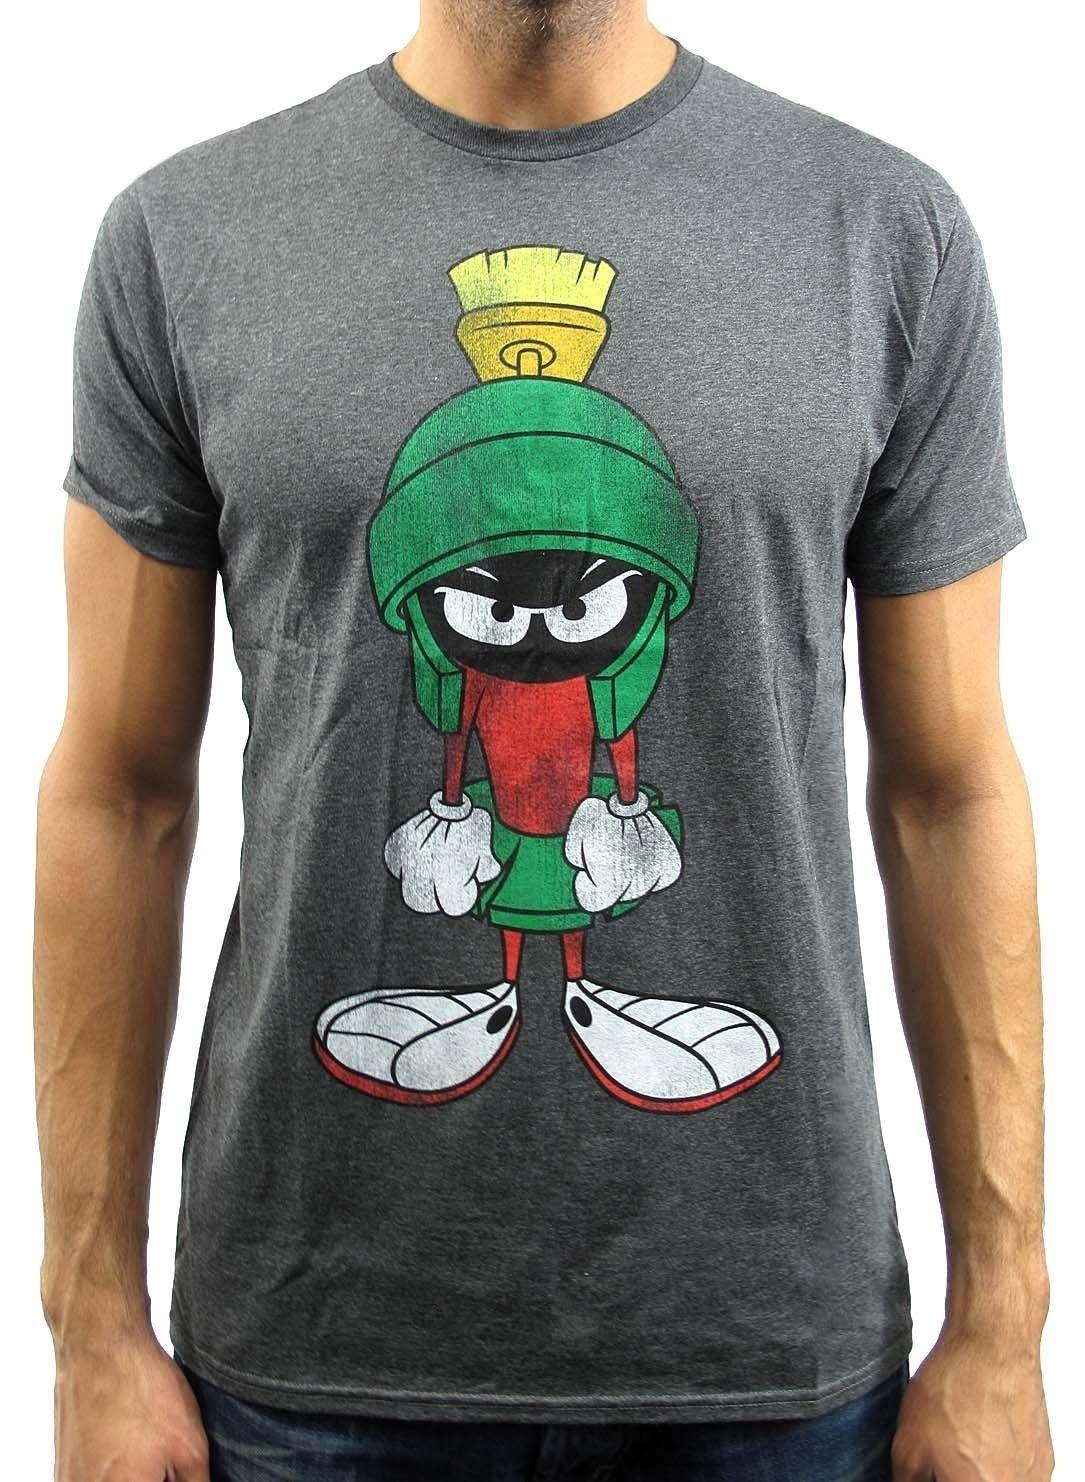 03c710244c42 Looney Tunes Marvin Martian Charcoal Heather Mens T-shirt New Tops Fashion  Cotton Tee